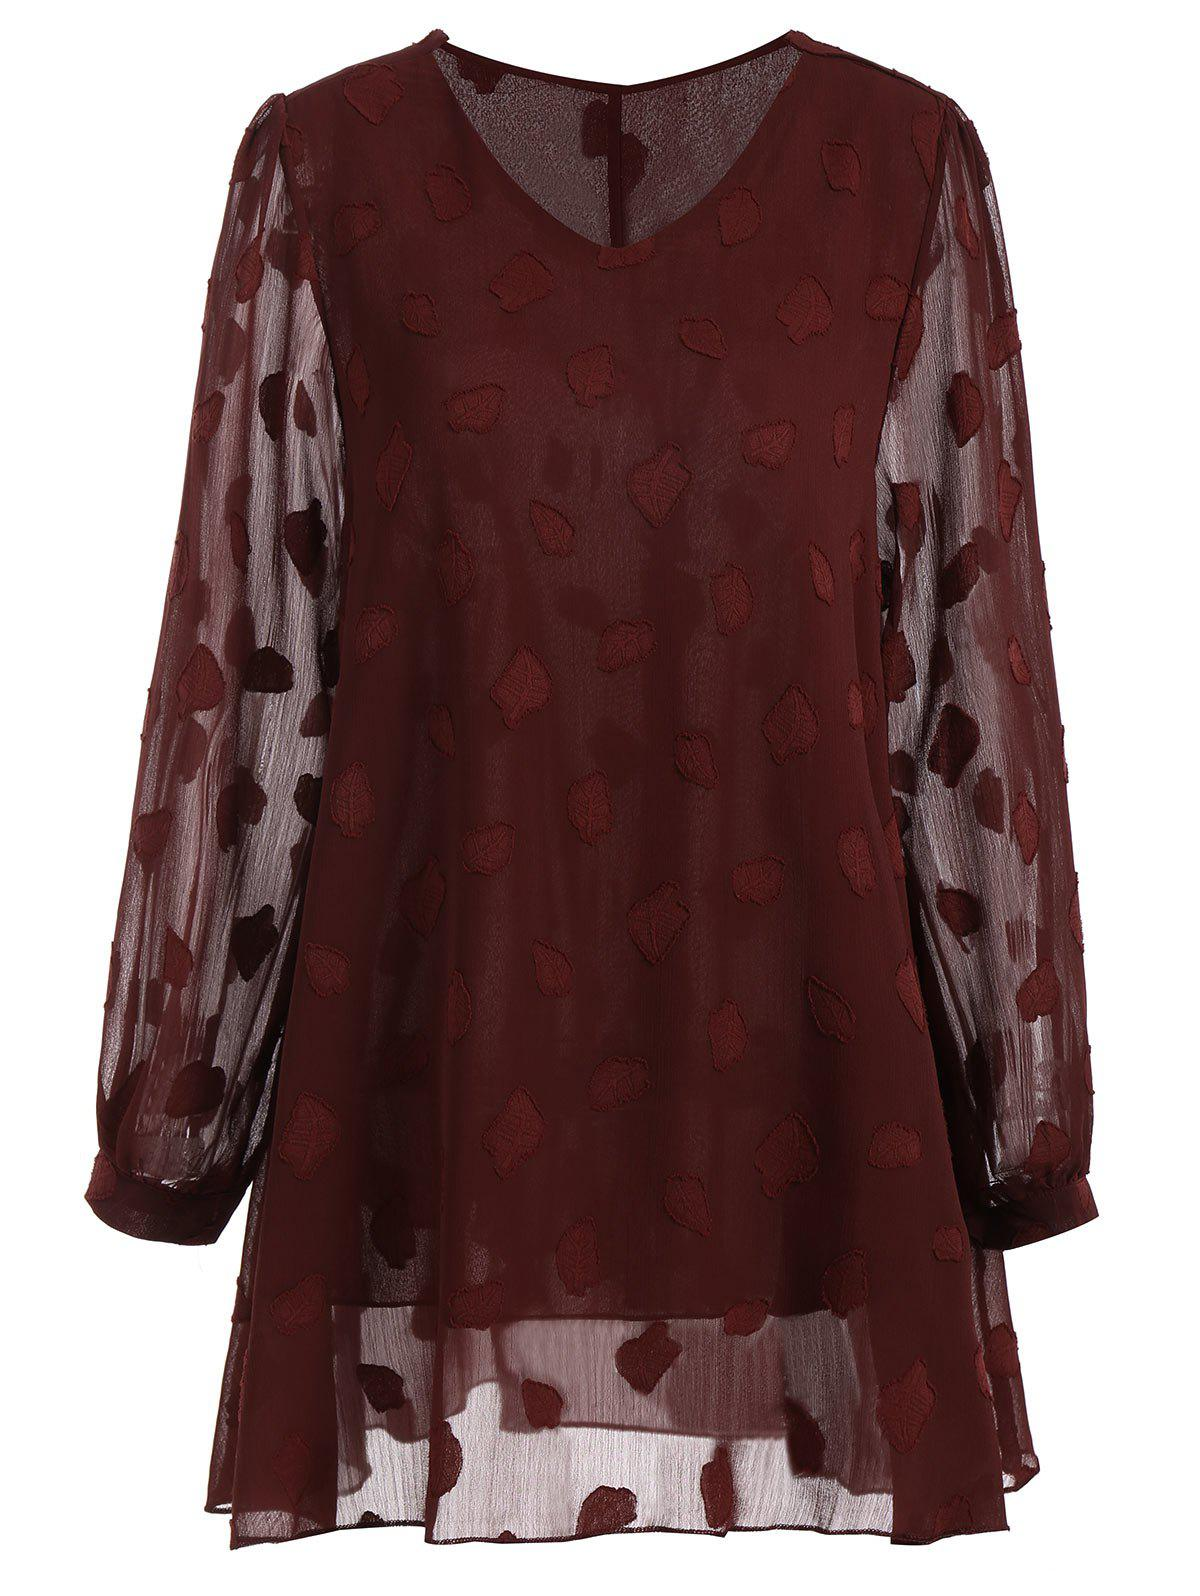 Plus Size Leaf Sheer V Neck Blouse - WINE RED 5XL